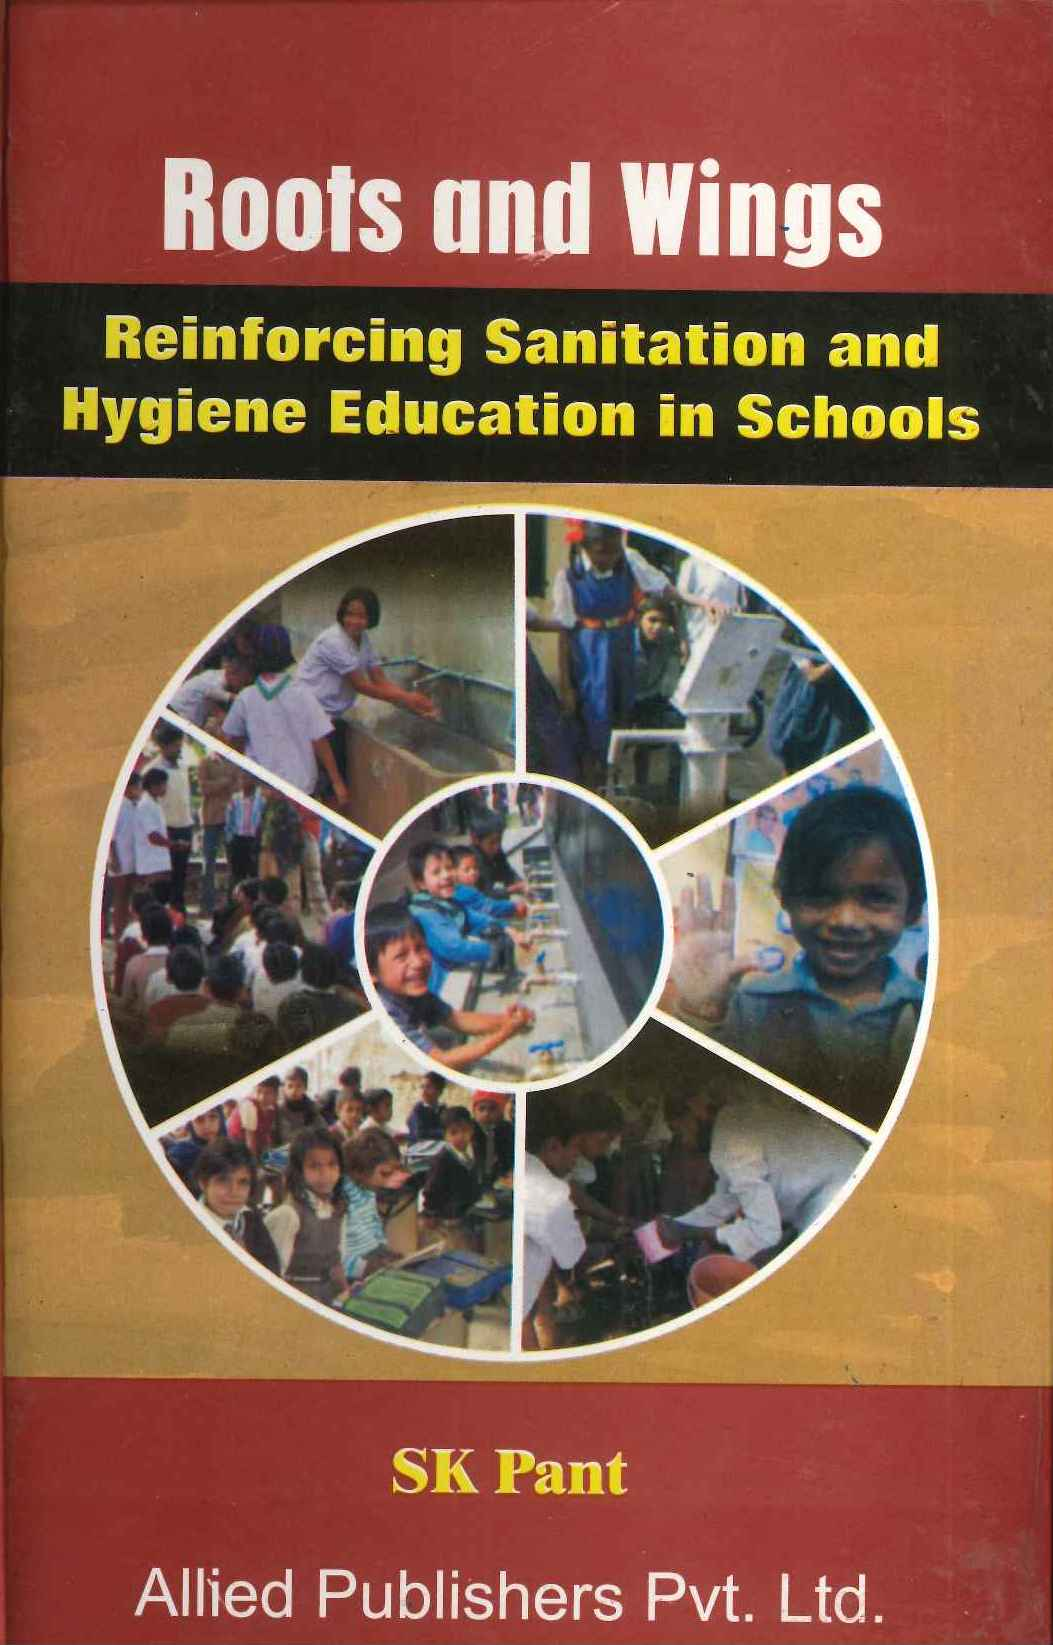 Roots and Wings: Reinforcing Sanitation and Hygiene Education in Schools